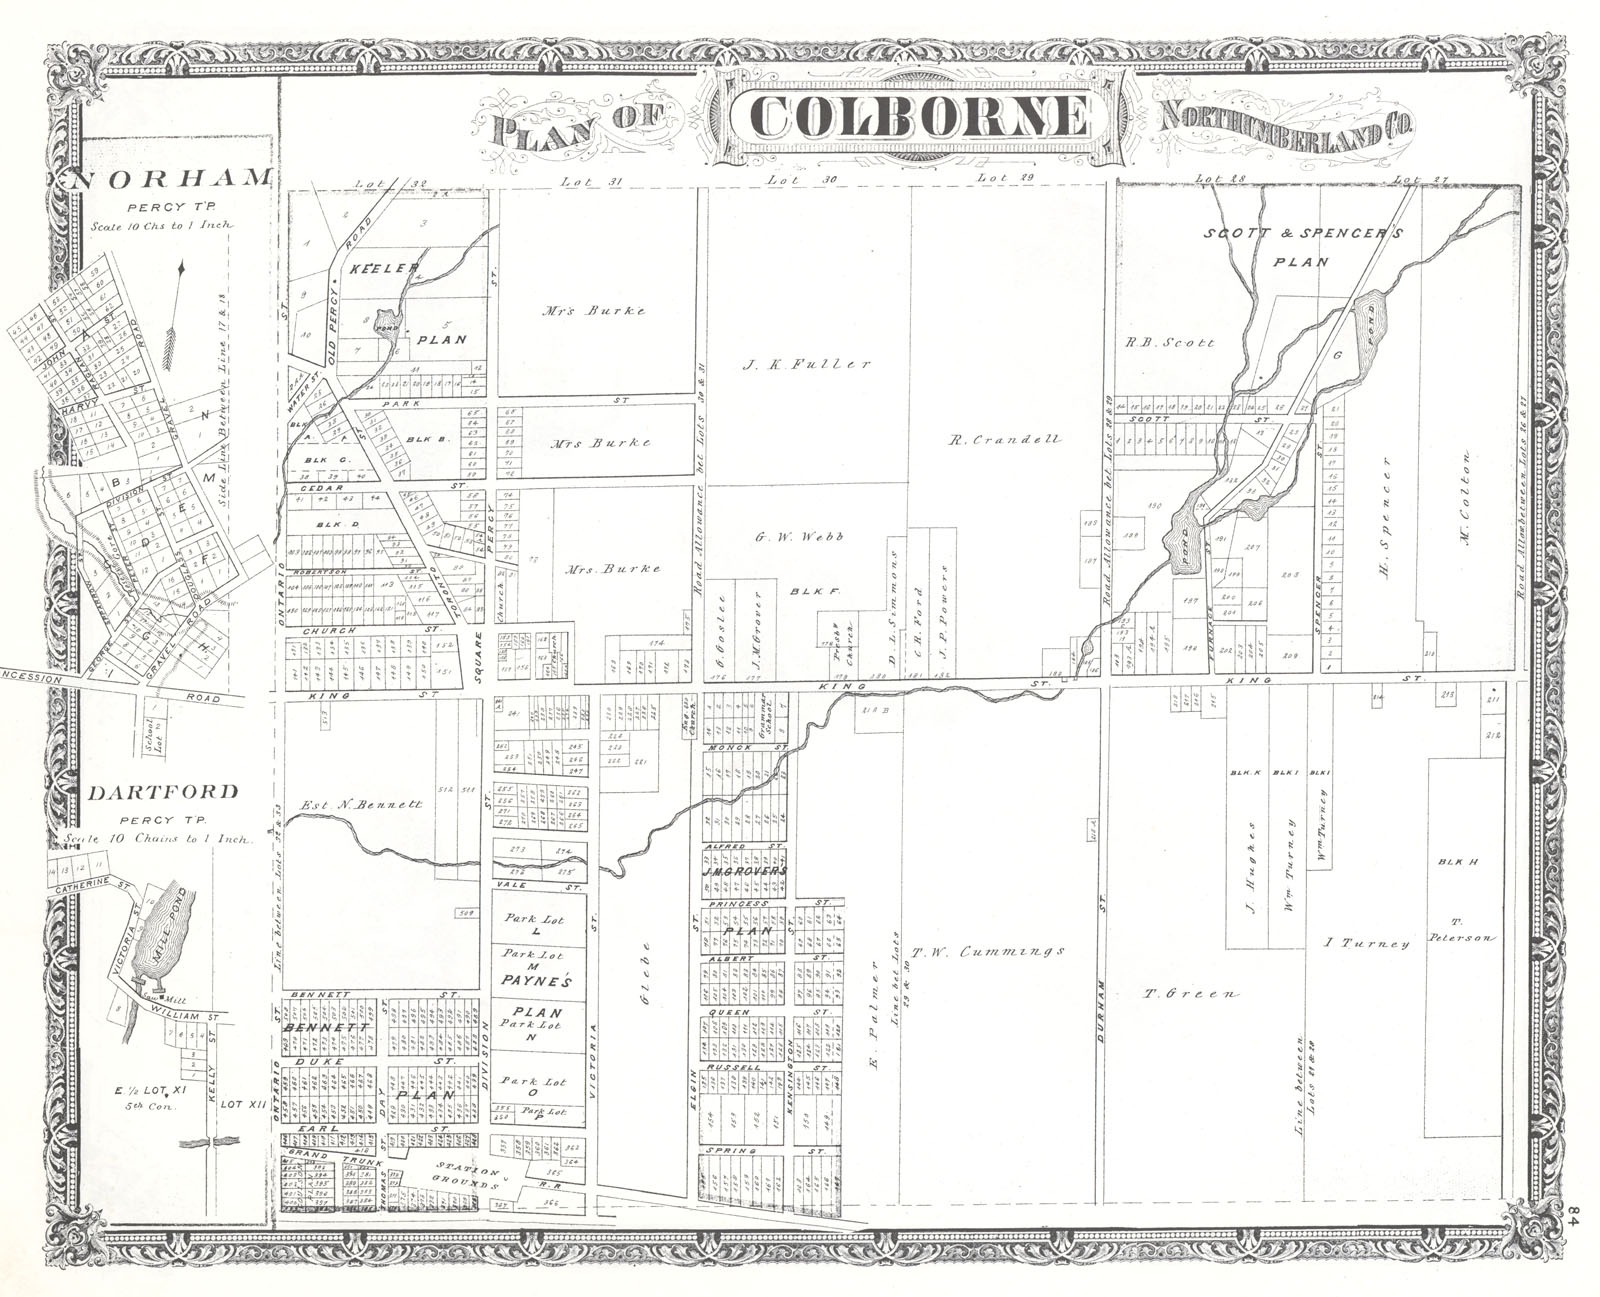 Colborne Map, Illustrated Historical Atlas